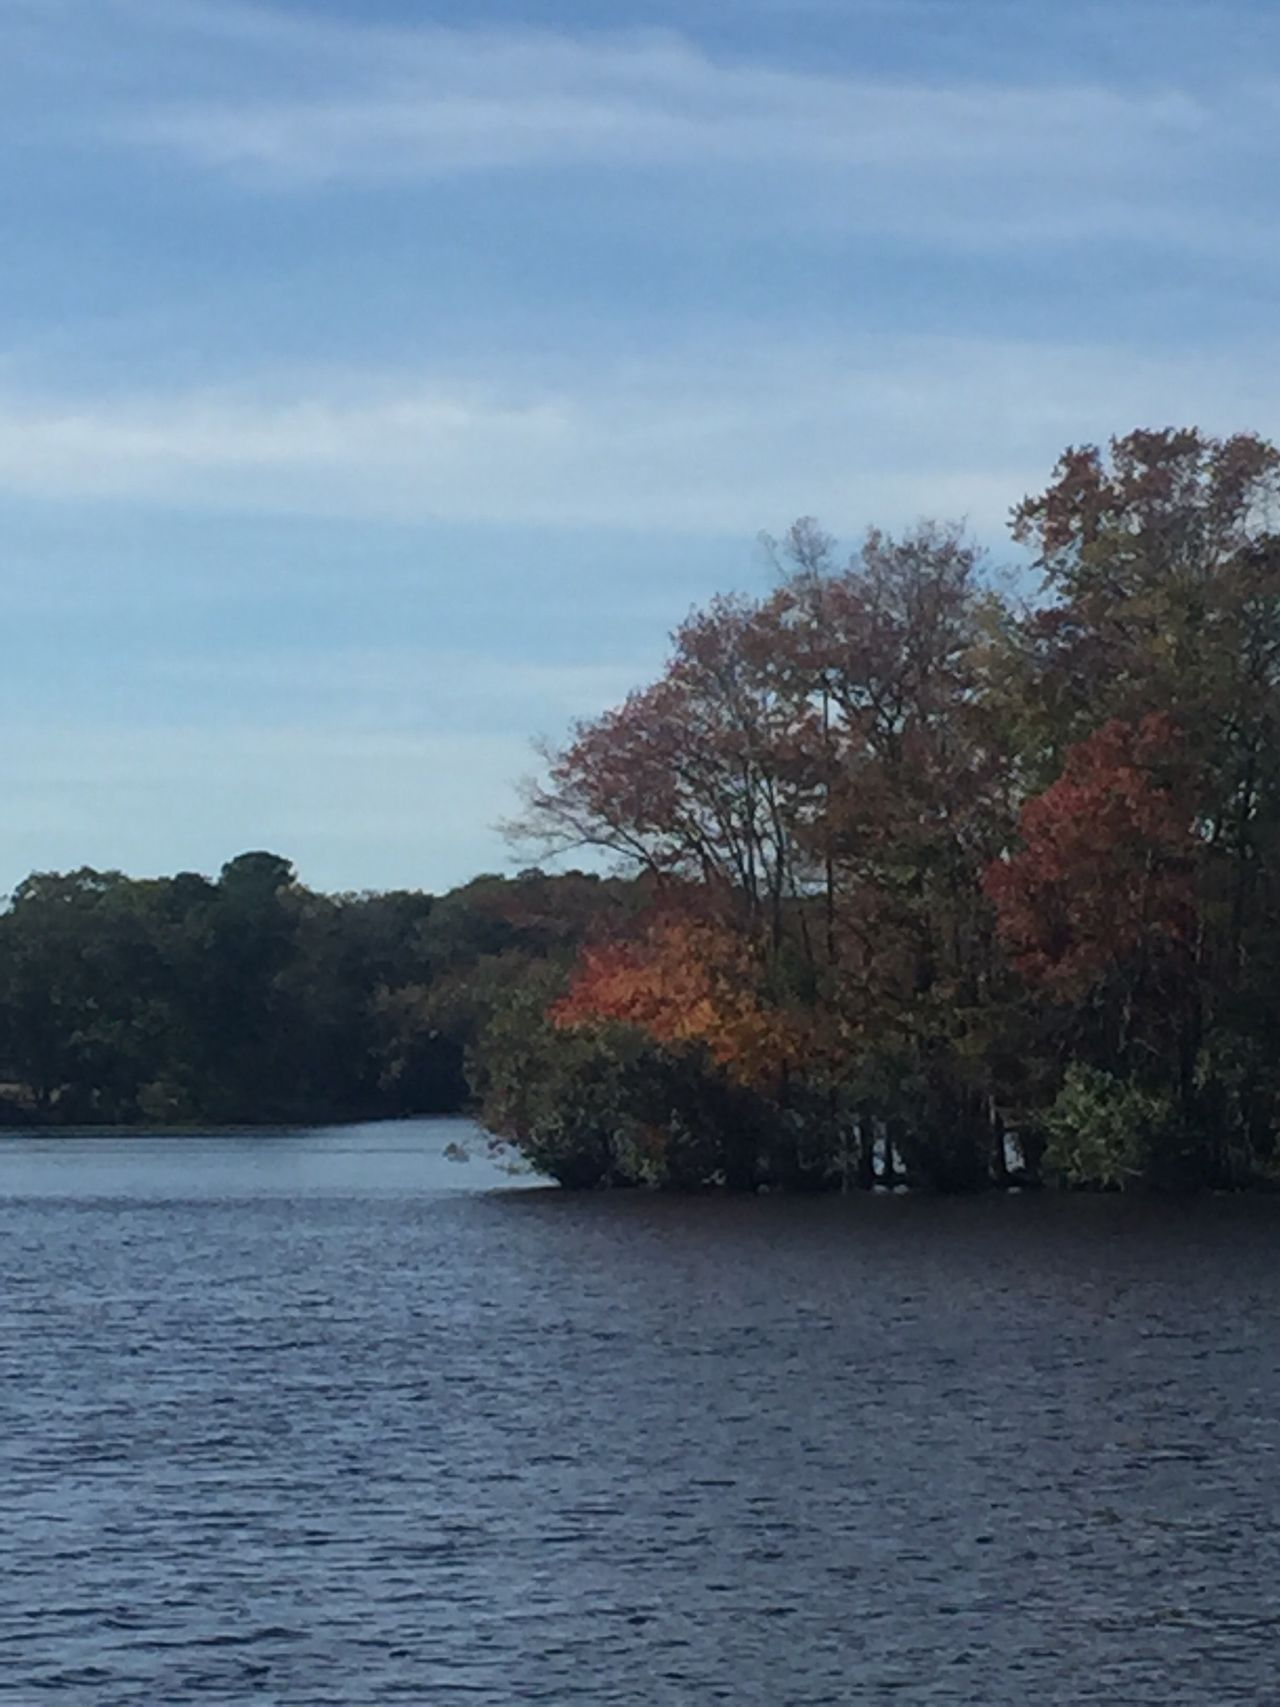 An island of autumn in the middle of Millsboro Pond! TreesAndWater Trees Autumn Autumn Leaves Beauty In Nature Landscape